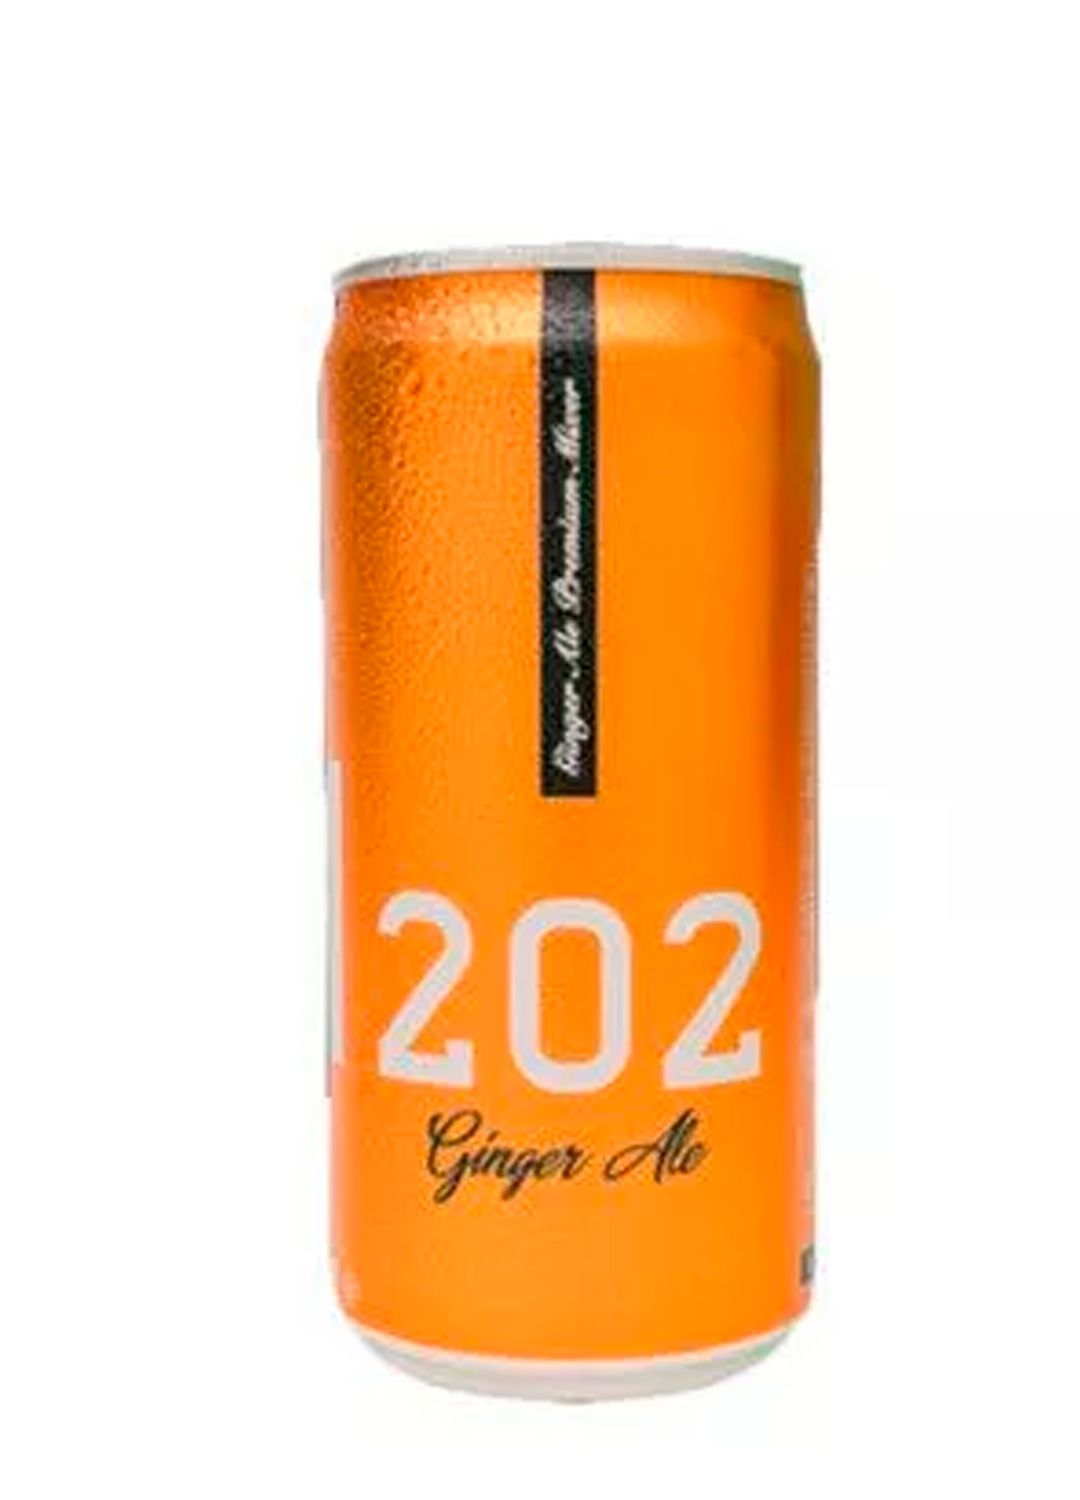 Ginger Ale - 202 - Lata - 269 ml